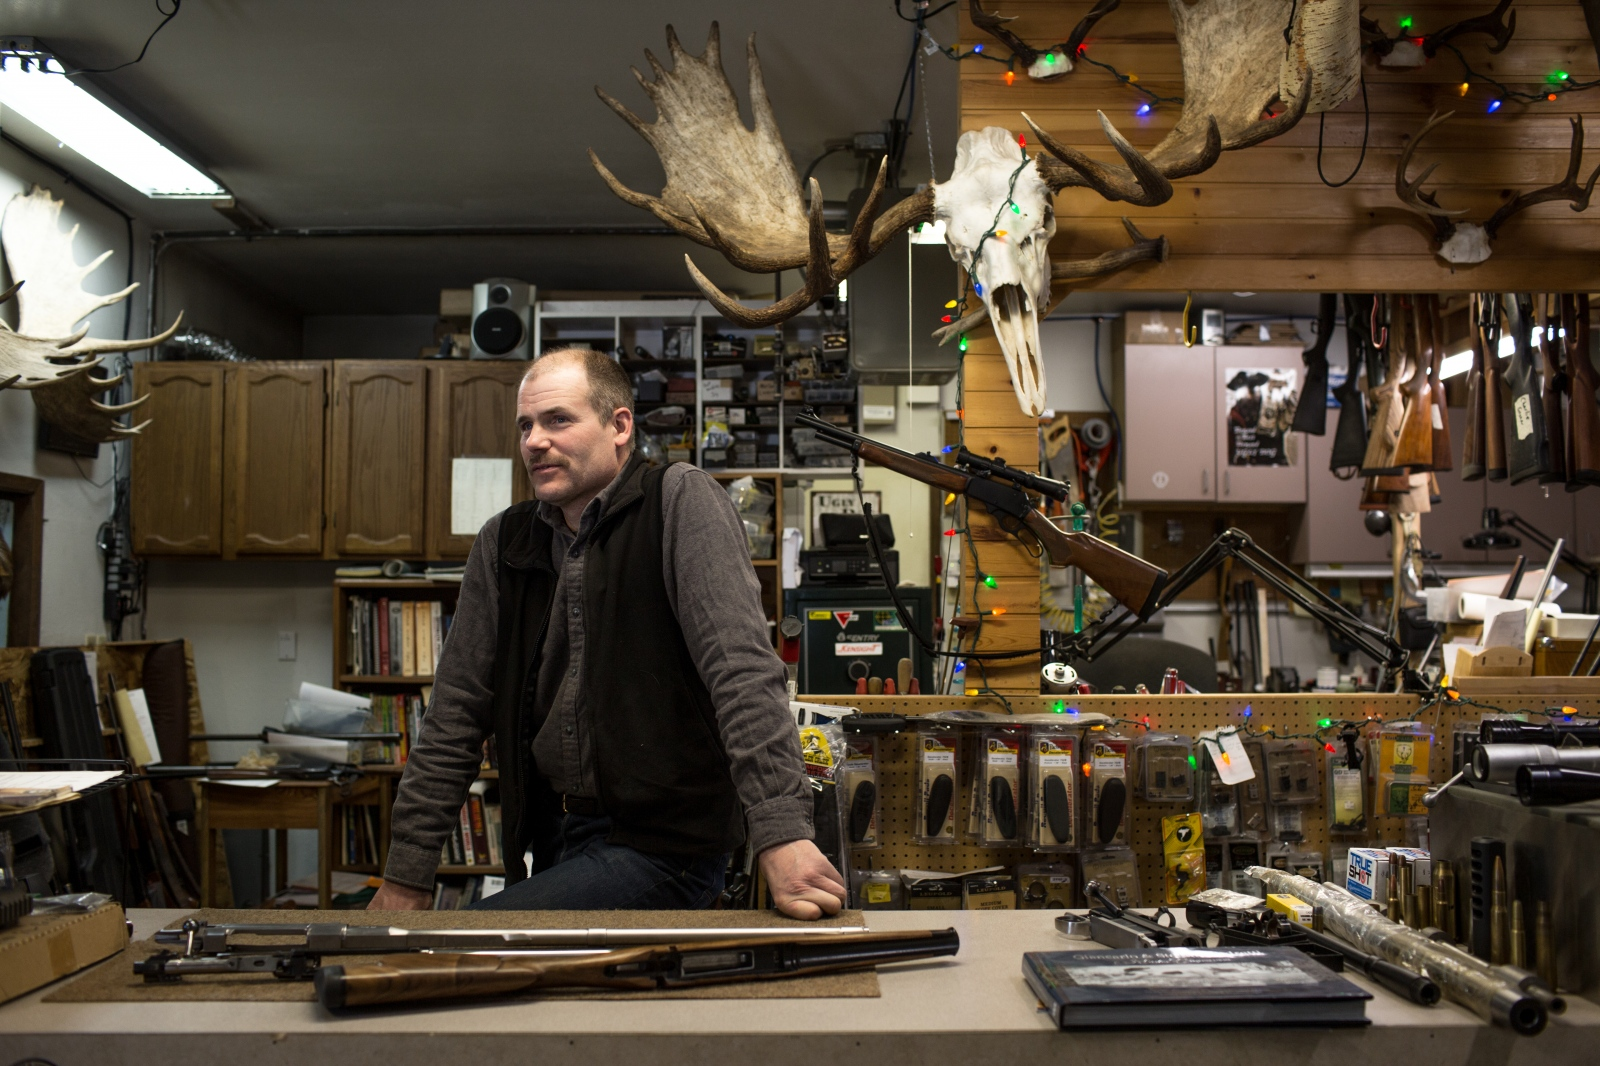 Andrew Hawk, 52, in his shop in Anchorage, Alaska. Hawk, a gunsmith, works from home along with Jen Jolliffe, an acupuncturist. Both receive healthcare coverage through the ACA and are concerned about what the AHCA for health coverage would mean for them. For KHN/the Washington Post .